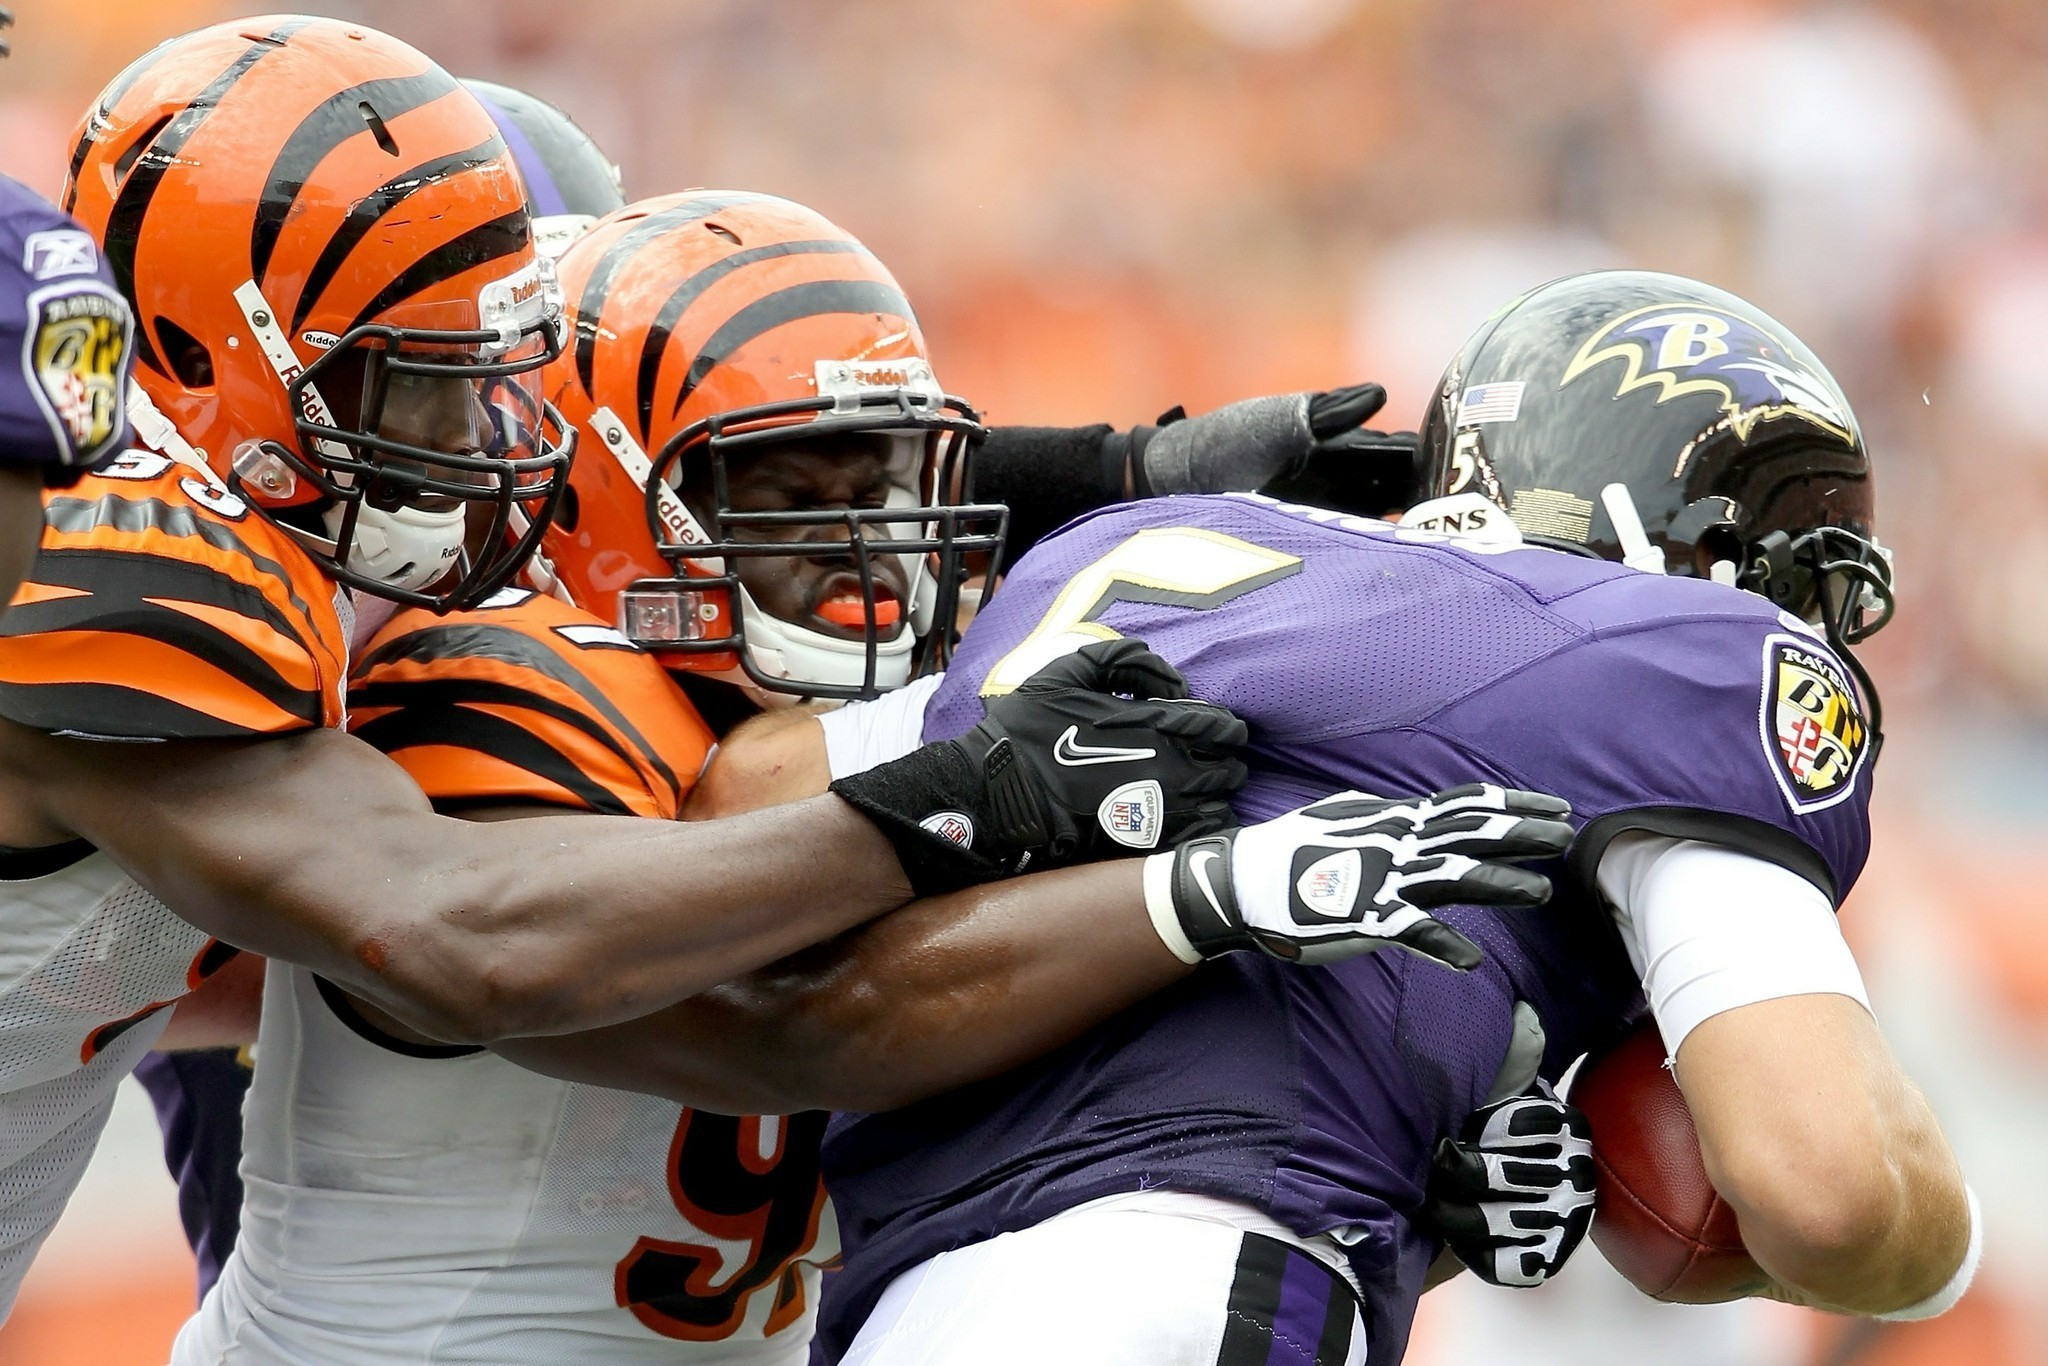 Bengals defensive line led by Geno Atkins could be a problem